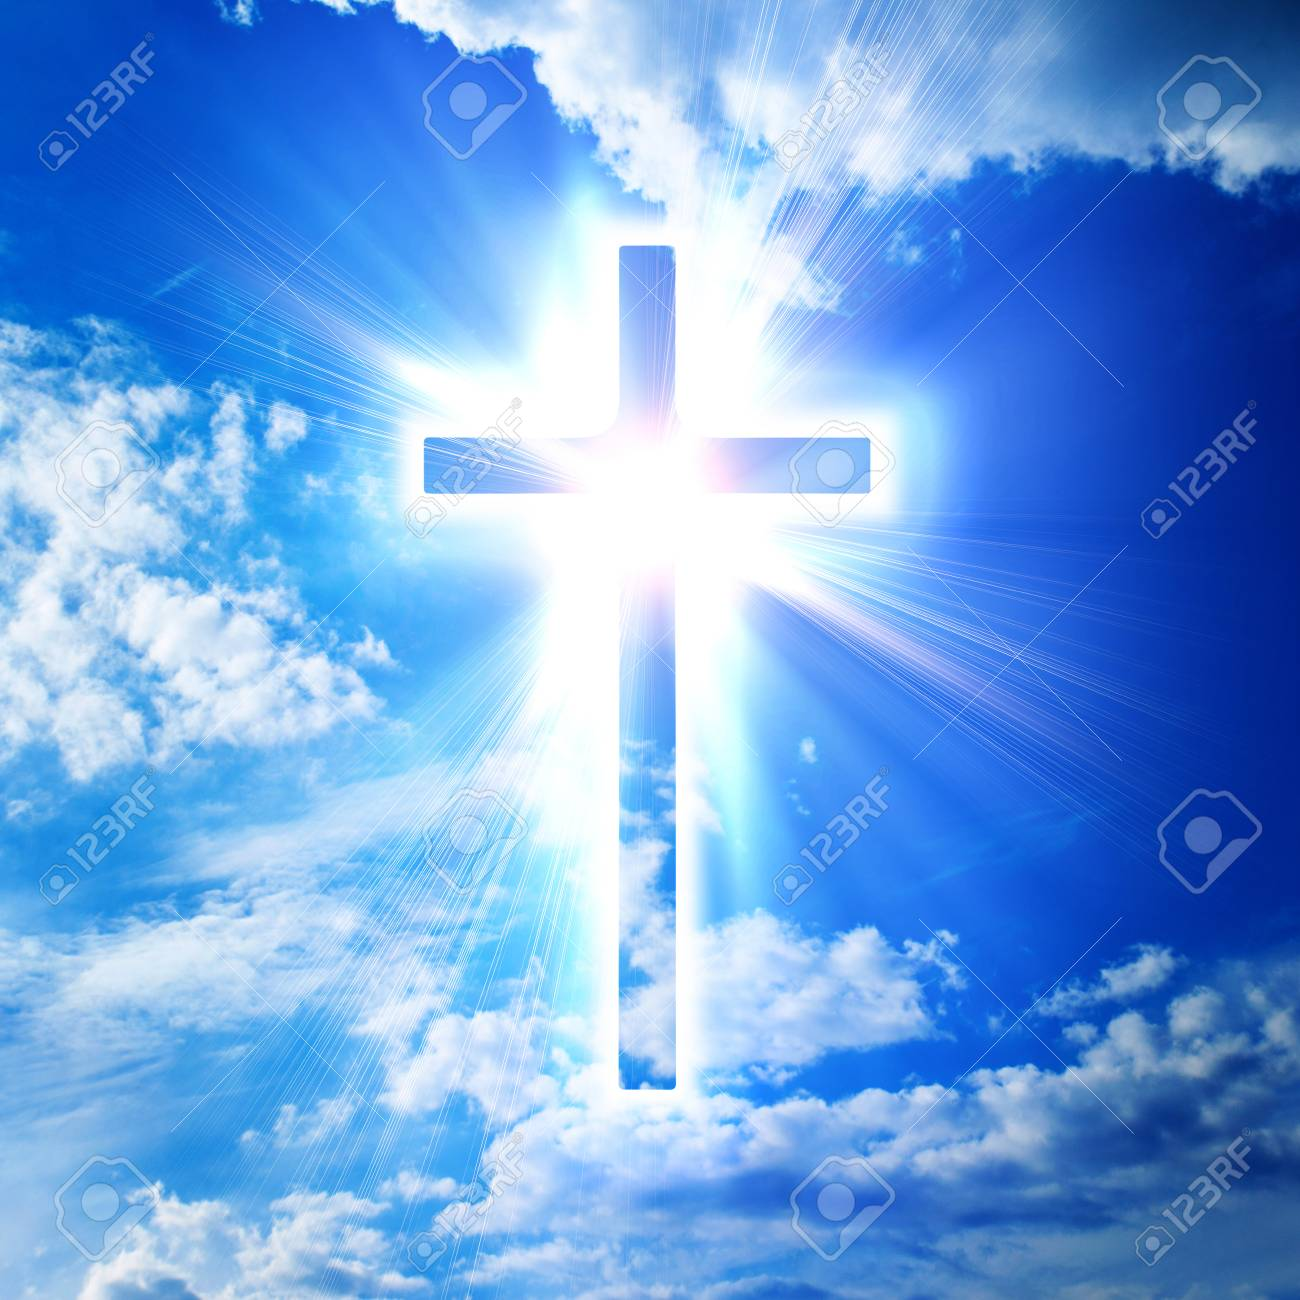 blue cross on heaven background stock photo picture and royalty free image image 87416989 123rf com